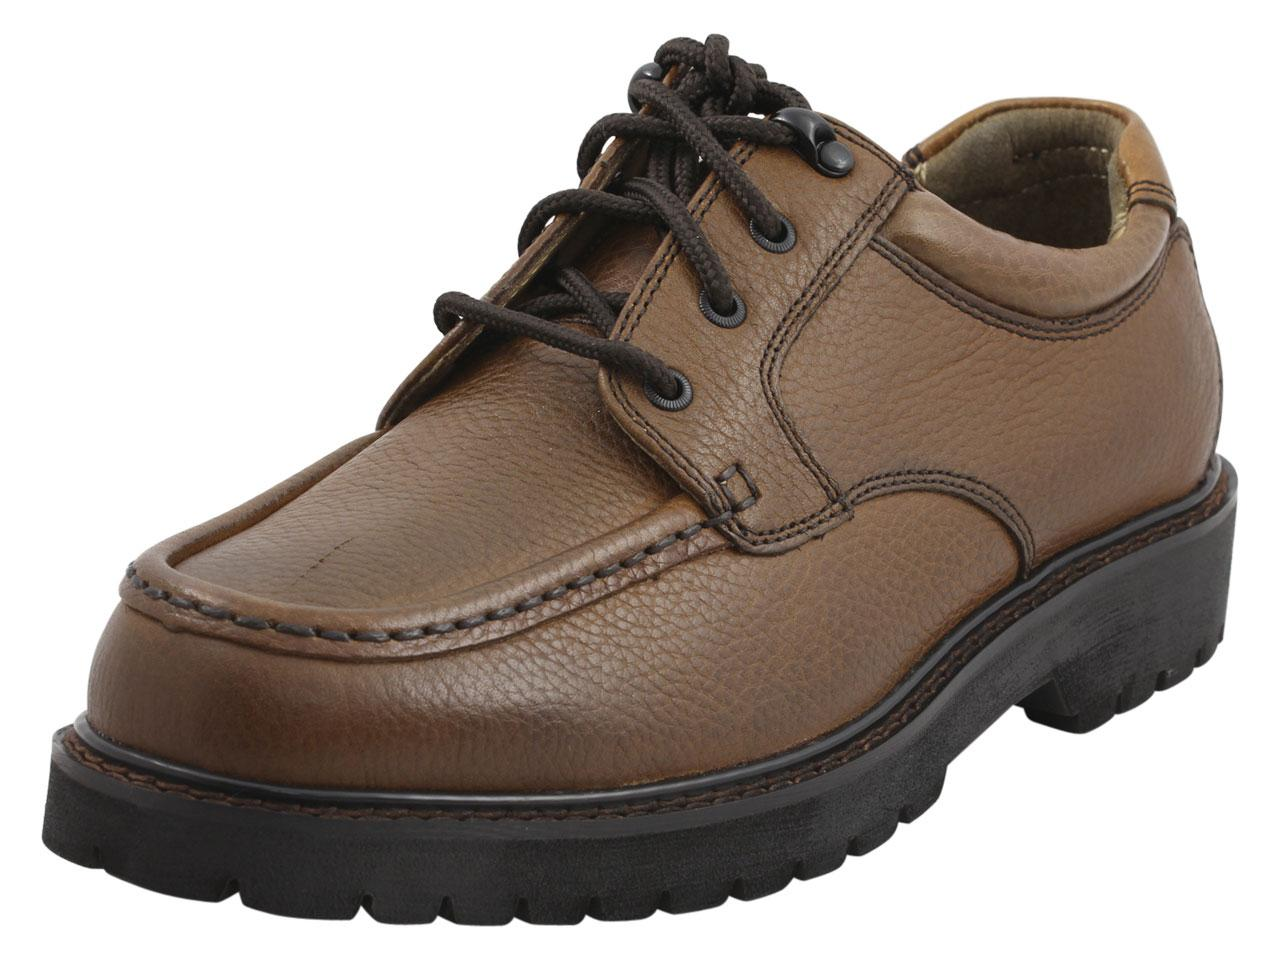 Image of Dockers Men's Glacier Memory Foam Oxfords Shoes - Brown - 10 D(M) US